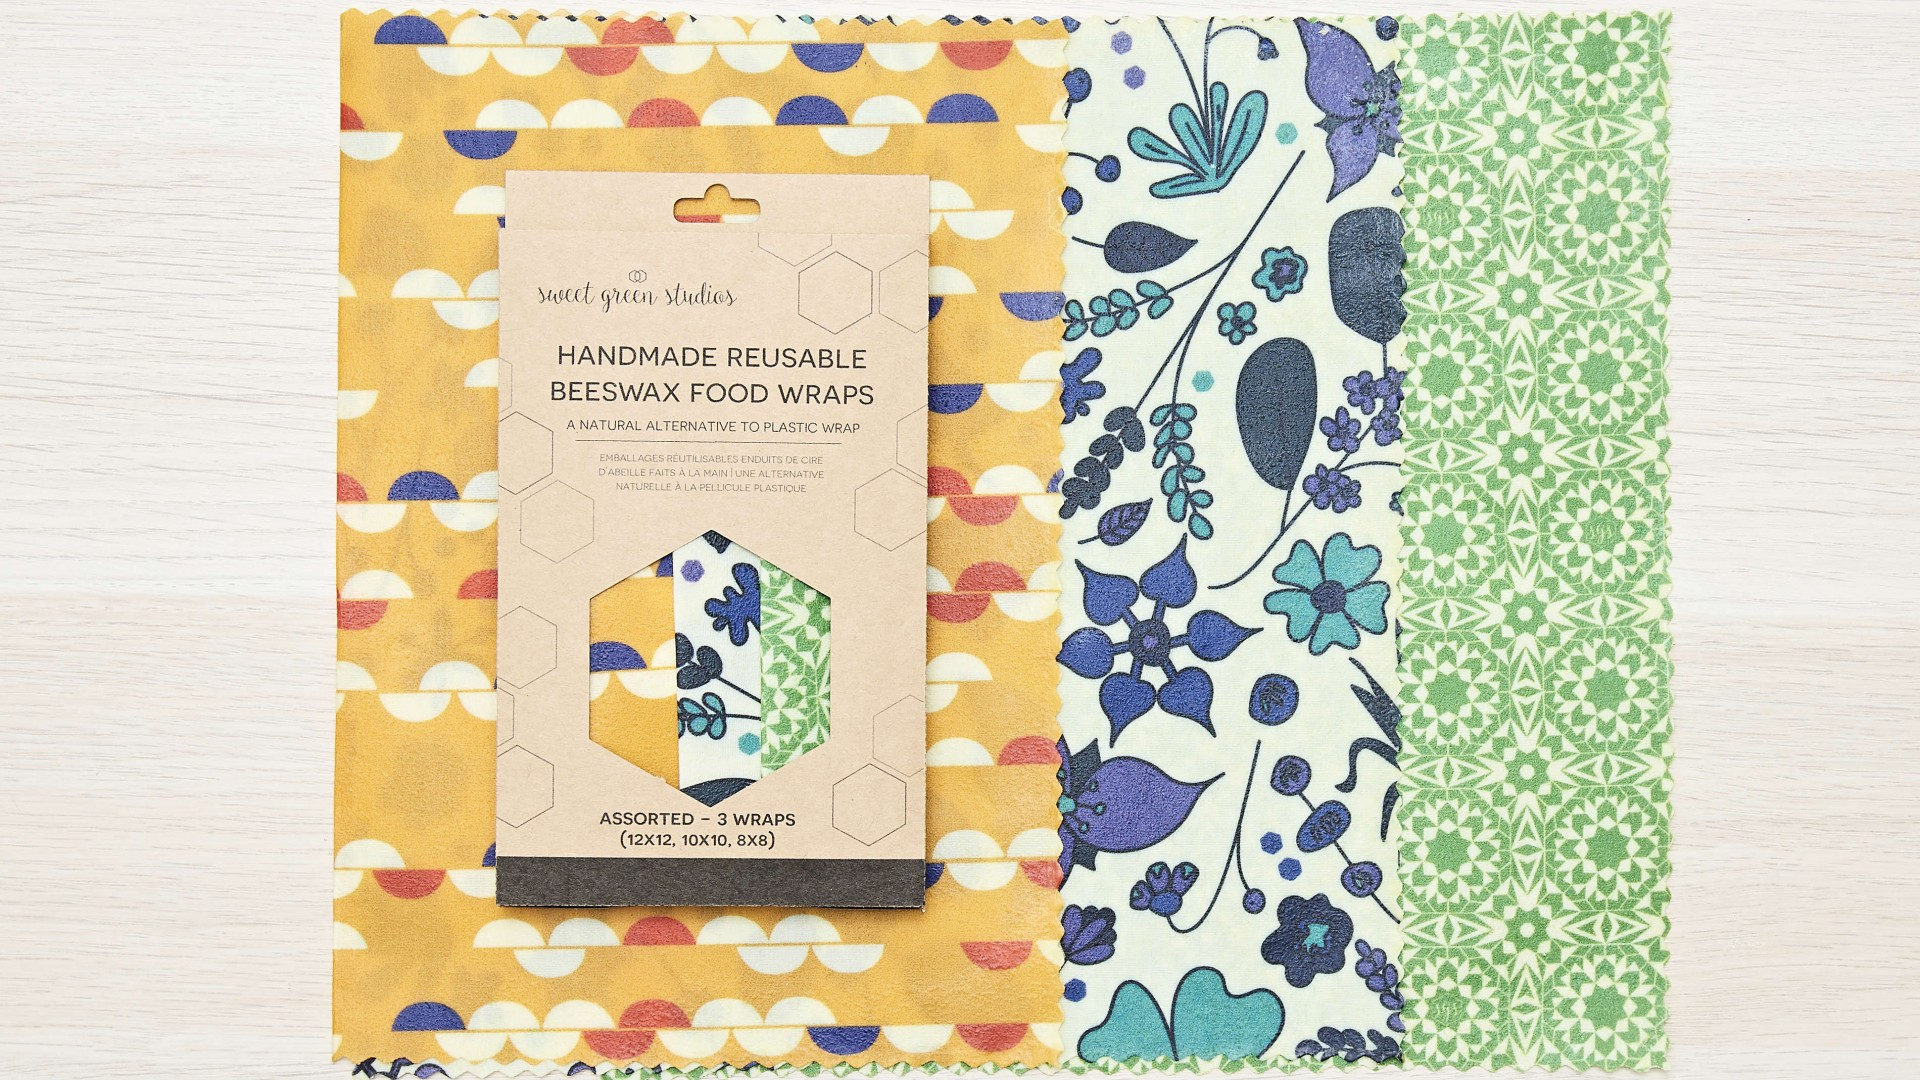 Weapons of Choice: Sweet Green Studios Beeswax Wraps | Foodism TO